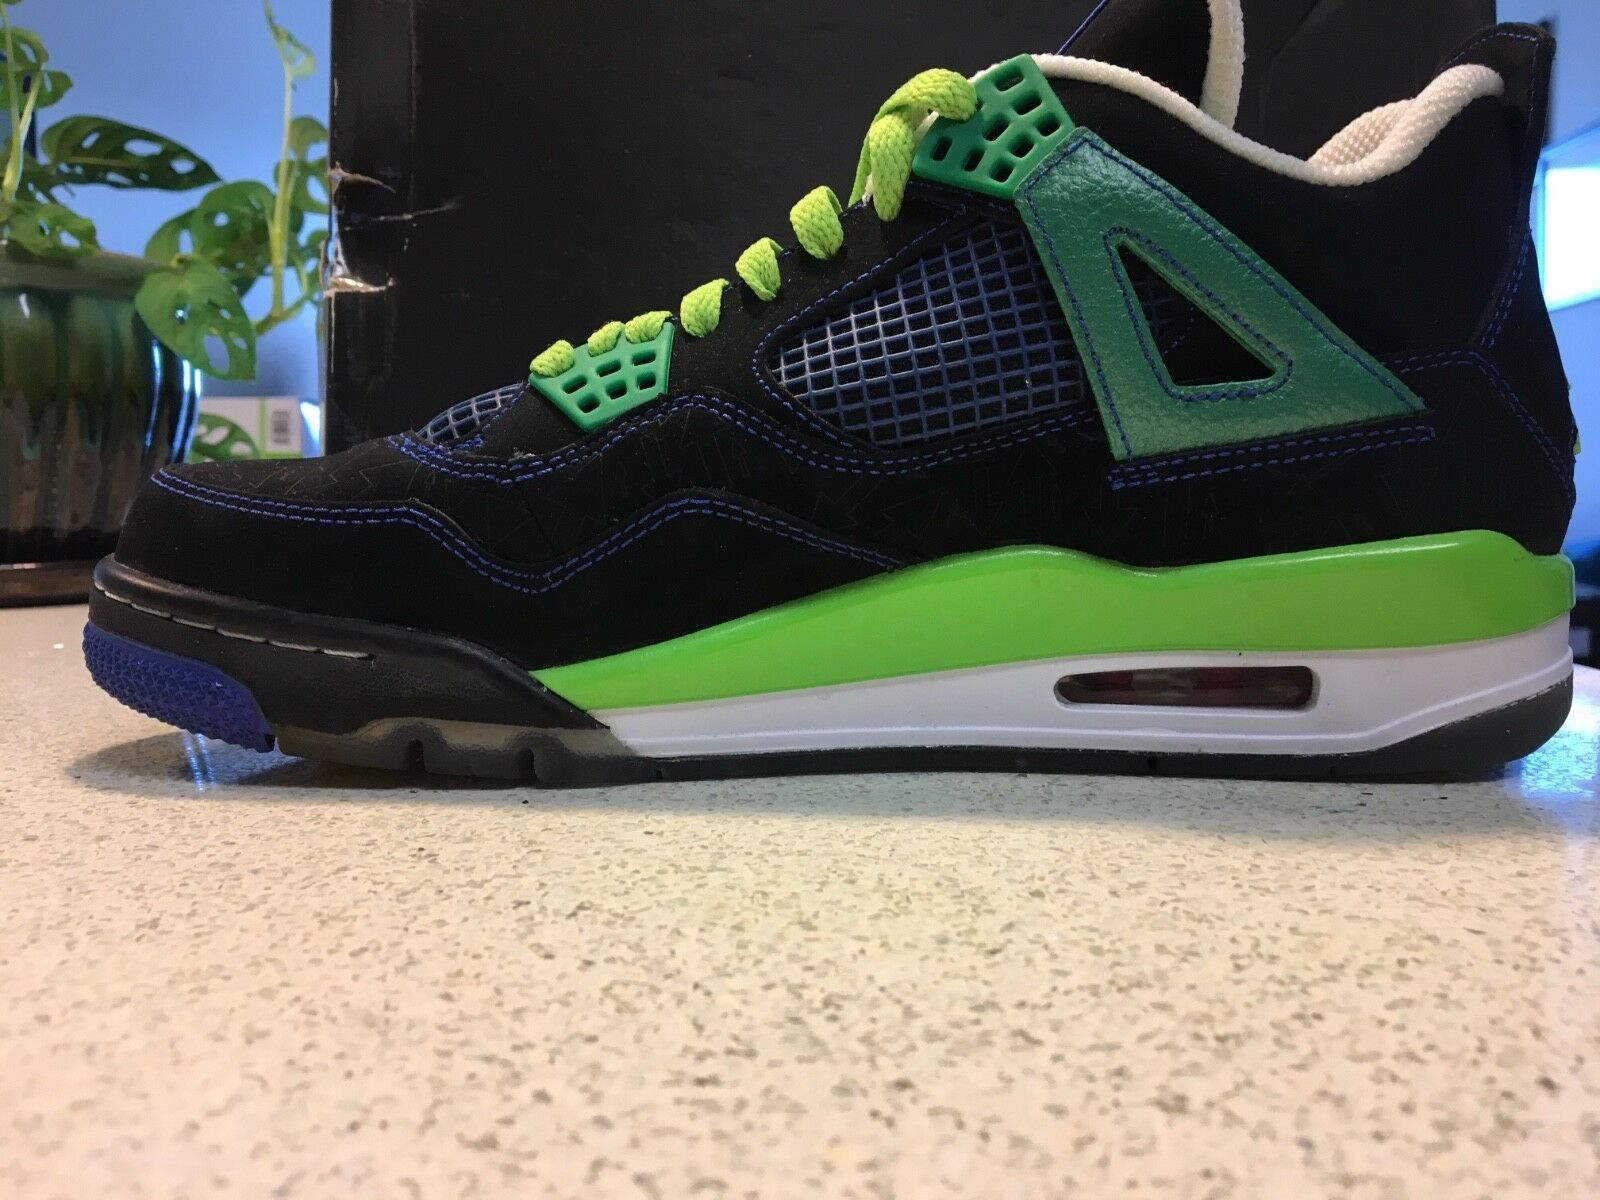 DS Air Jordan 4 IV retro Doernbecher DB sz9.5 w/OG Box superman logo